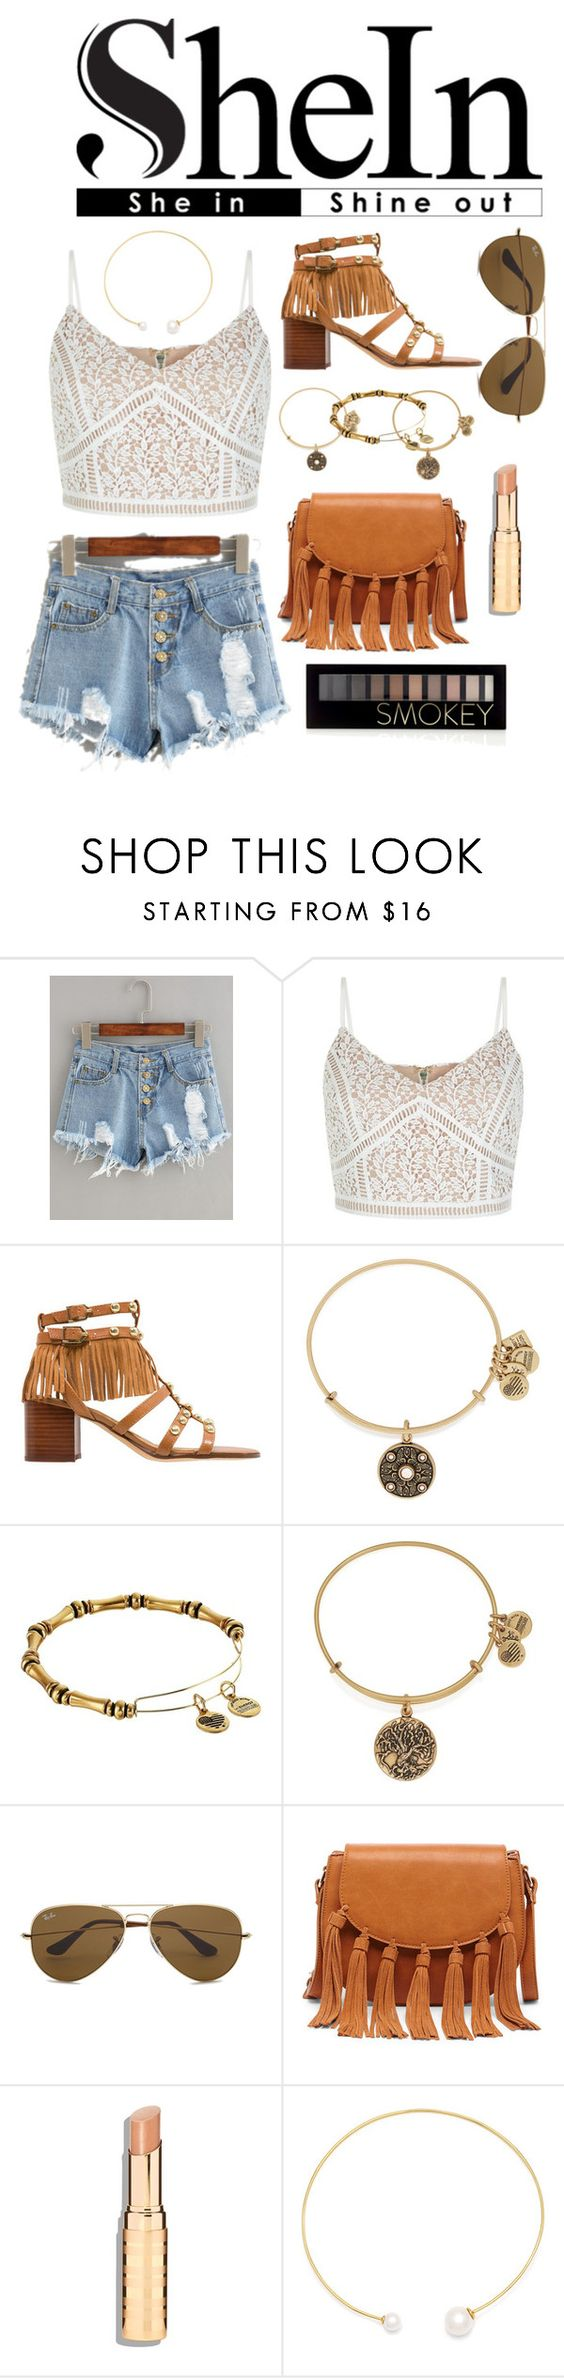 """""""Gold n' Tassels Summer Style"""" by akchaney03 ❤ liked on Polyvore featuring New Look, Sam Edelman, Alex and Ani, Ray-Ban, Sole Society, Fallon and Forever 21"""